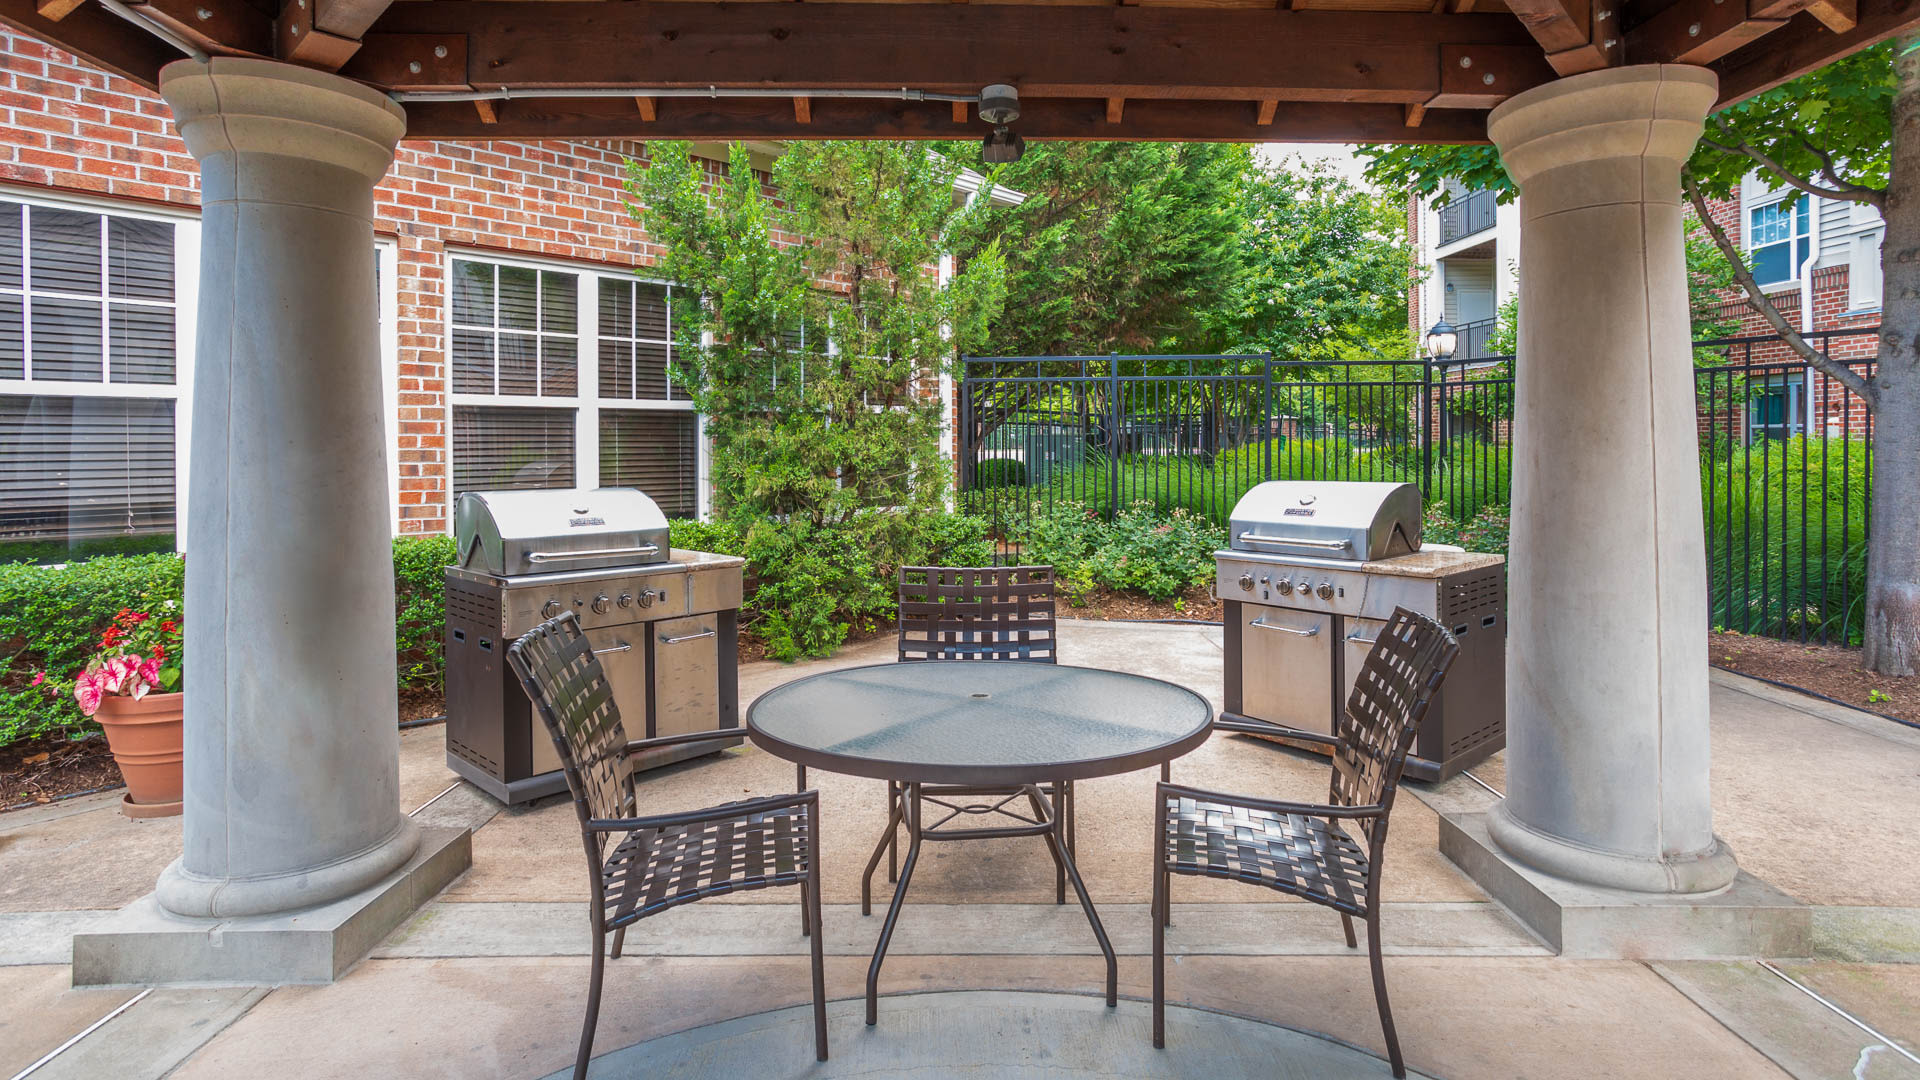 Fairchase Apartments - Patio and Grilling Area